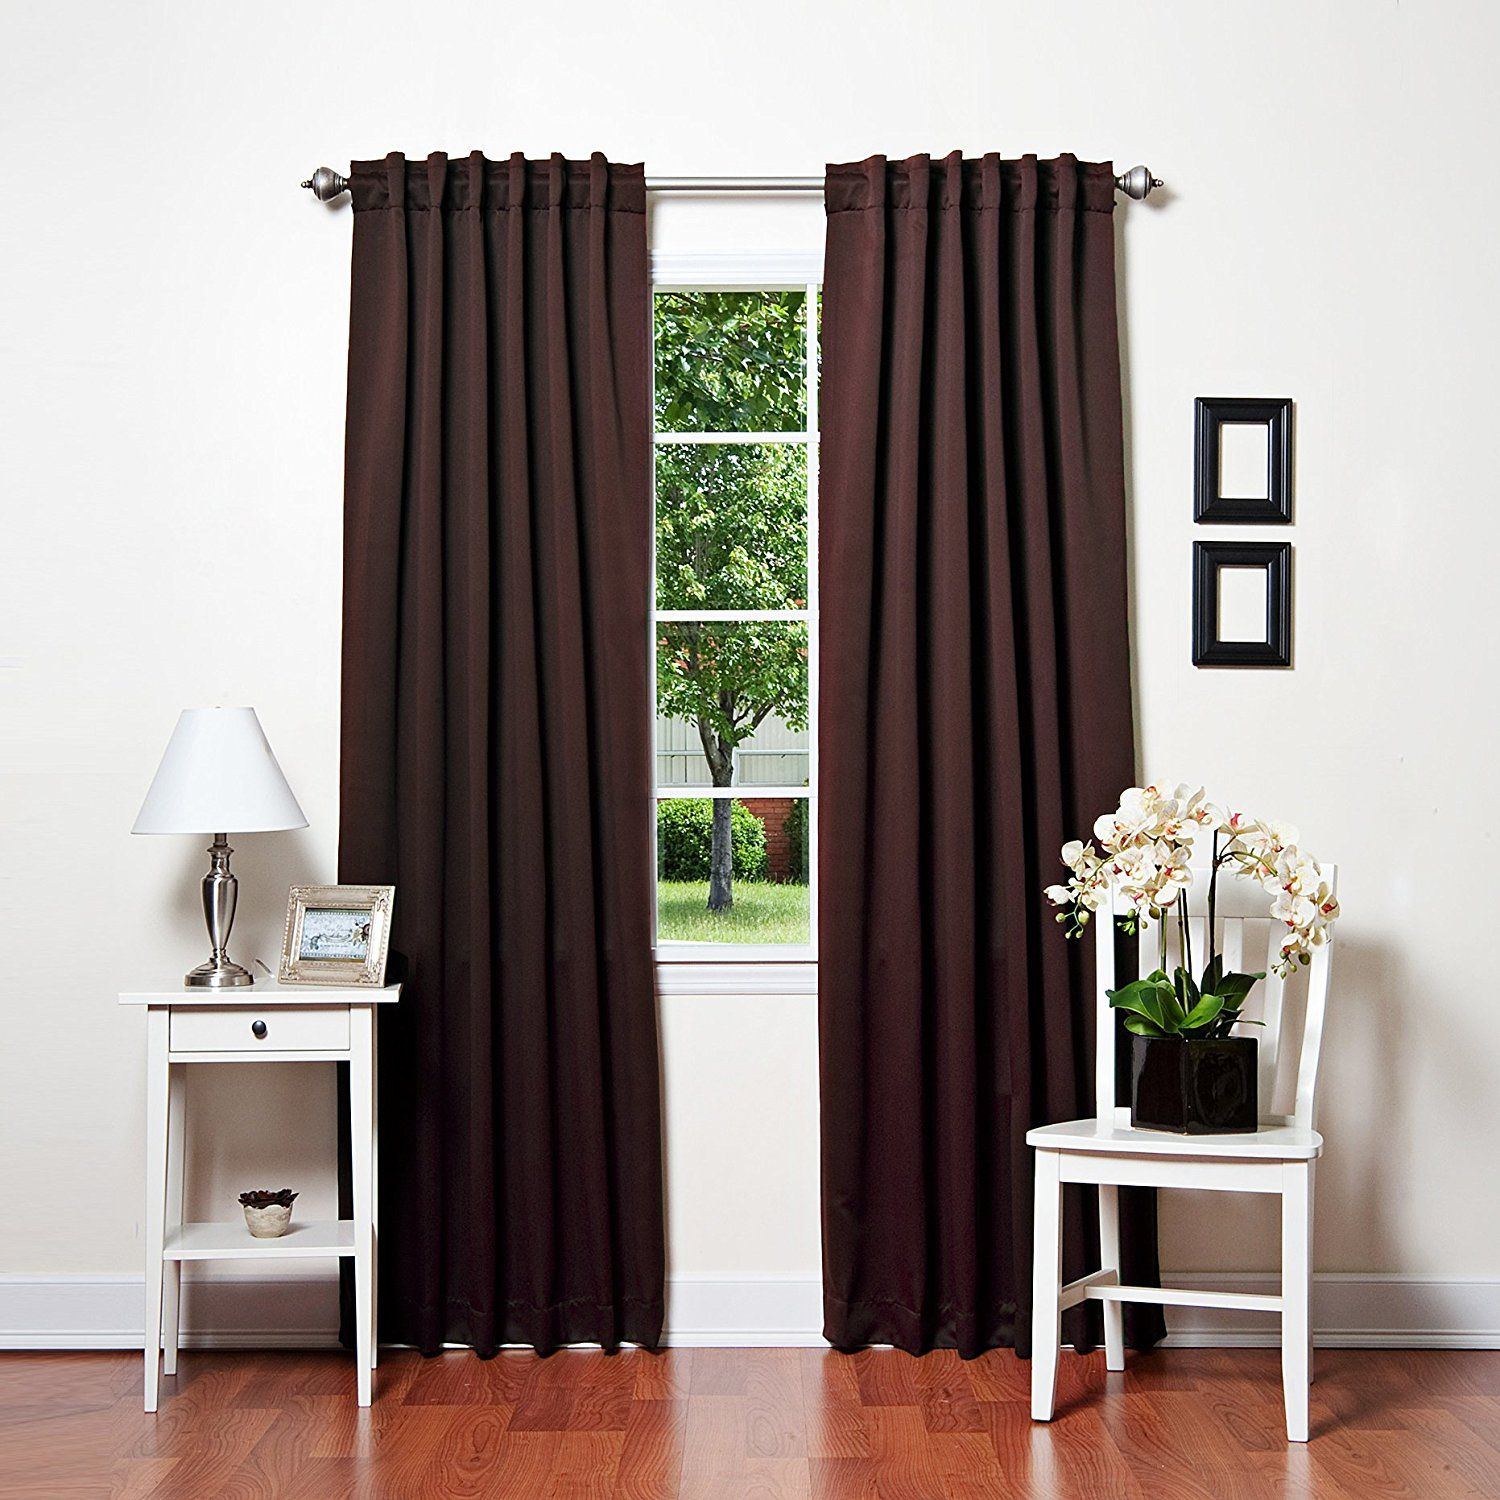 Best Home Fashion Basic Thermal Insulated Blackout Curtains   Back Tab/ Rod  Pocket   Dark